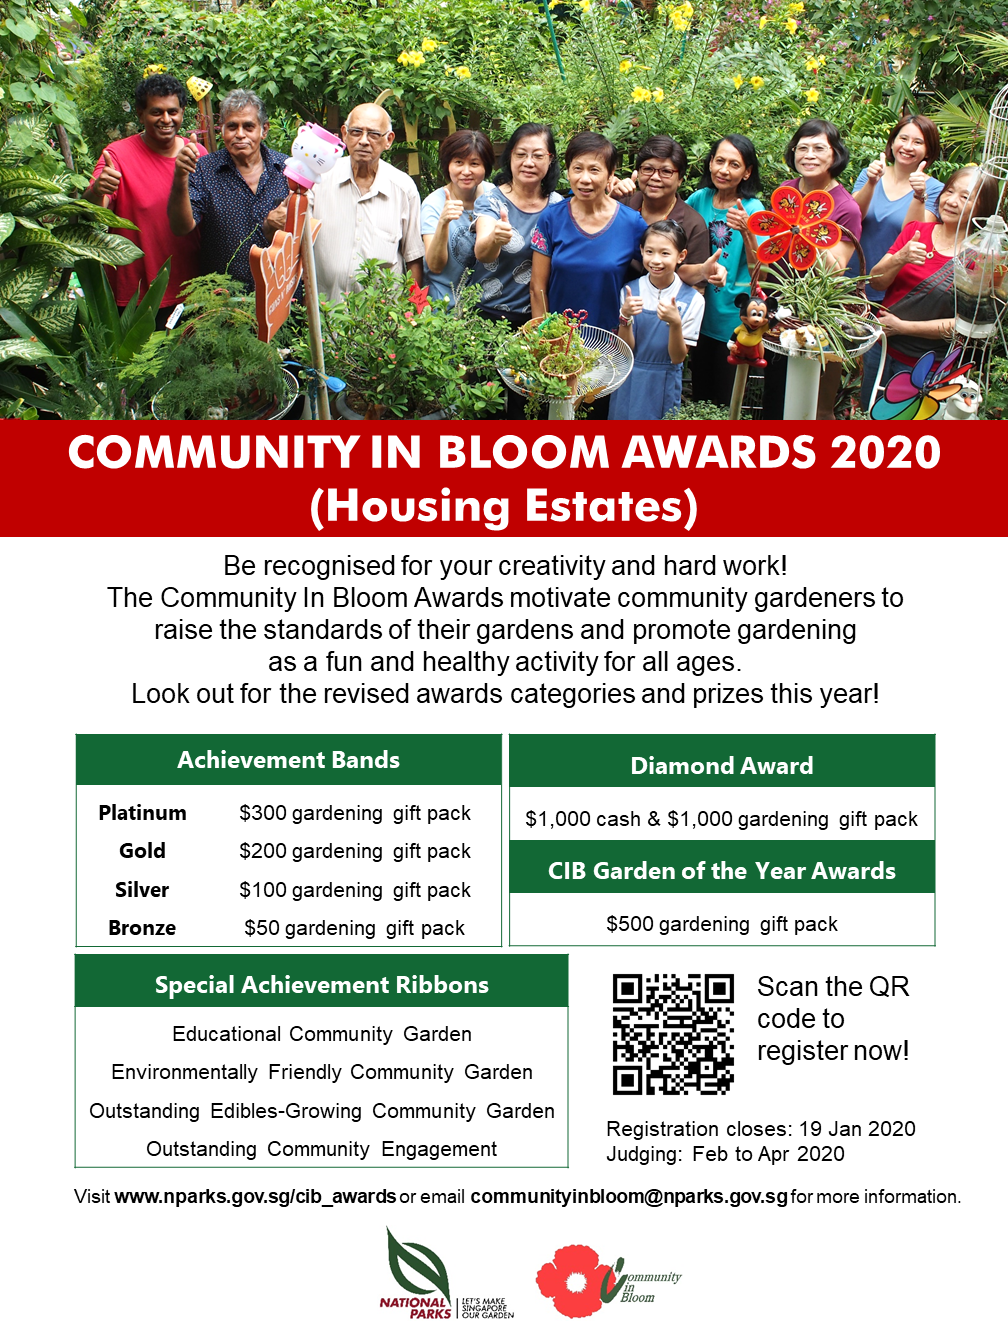 CIB Awards 2020 (Housing Estates) Poster